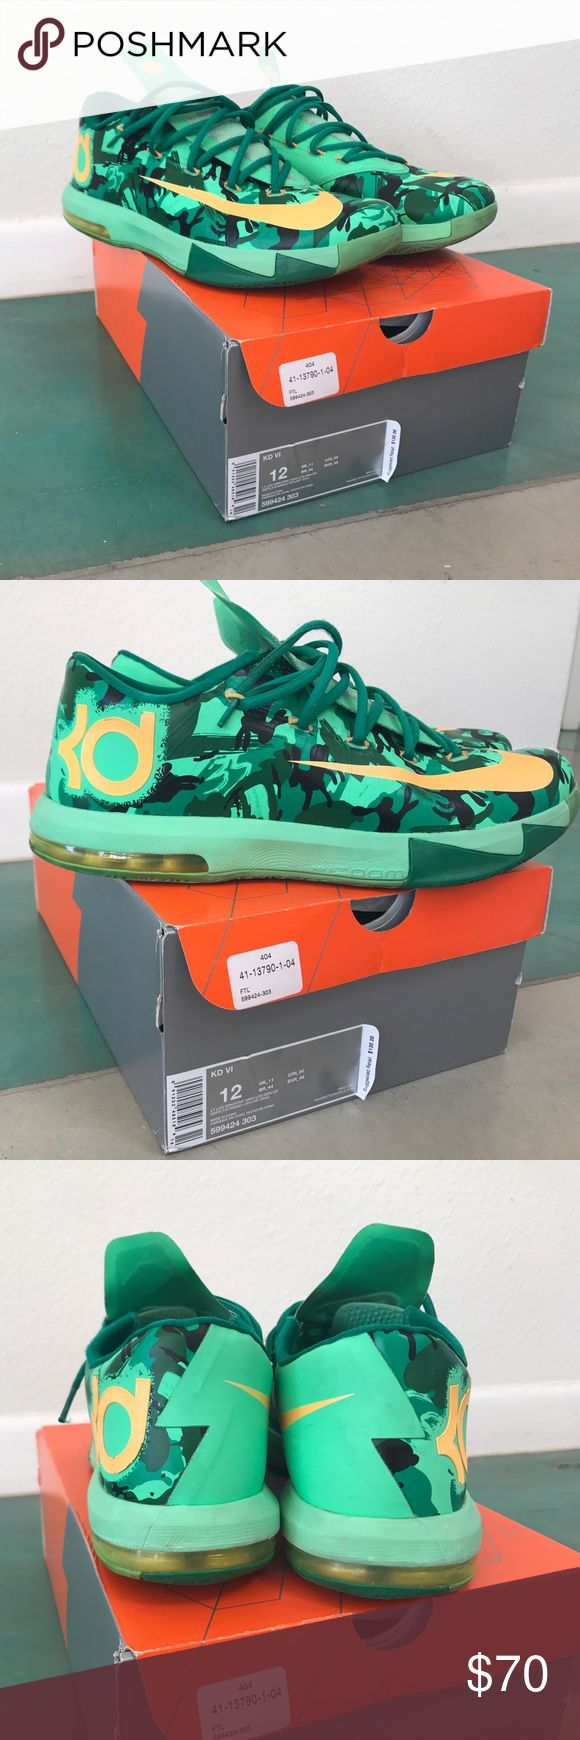 "NIKE KD VI ""EASTER"" 7/10 CONDITION Nike Kd VI ""Easter"" colorway. 7/10 Condition, 100% authentic with original box. Nike Shoes Sneakers"